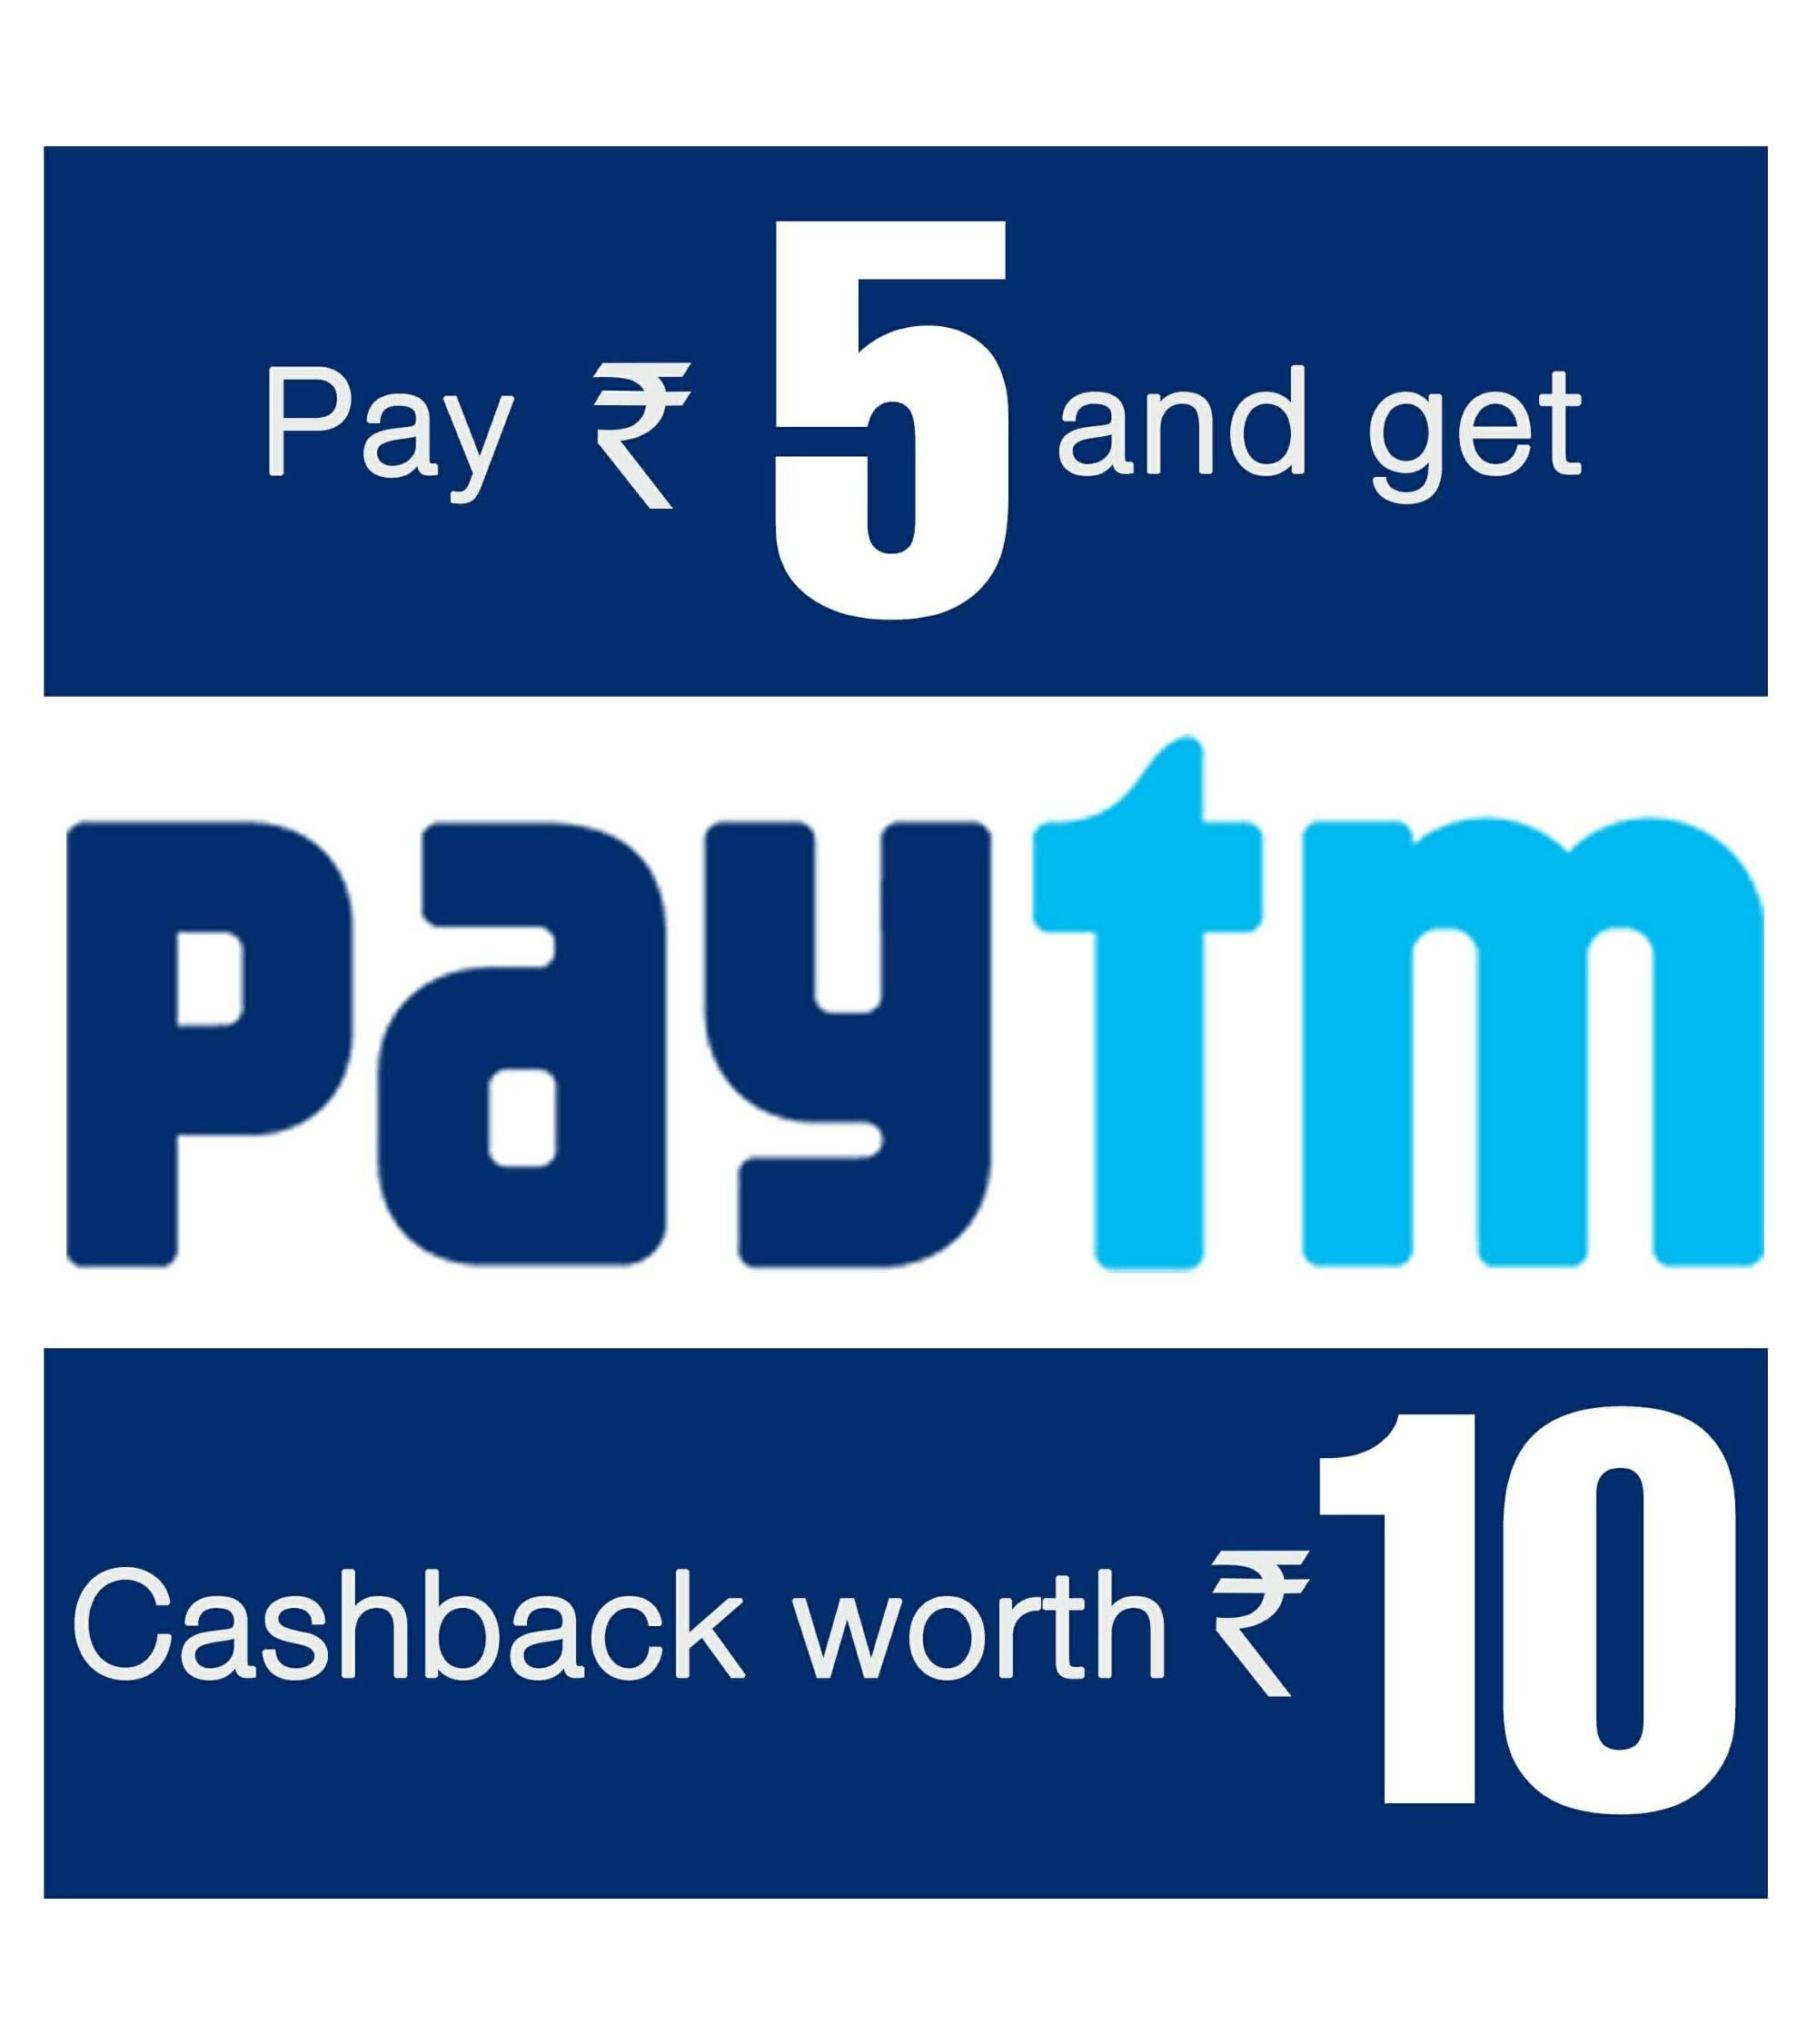 d1e568a3468 Paytm Charagh din offer Pay Rs 5 and Get Rs 10 Cashback ( Trick added for  more )